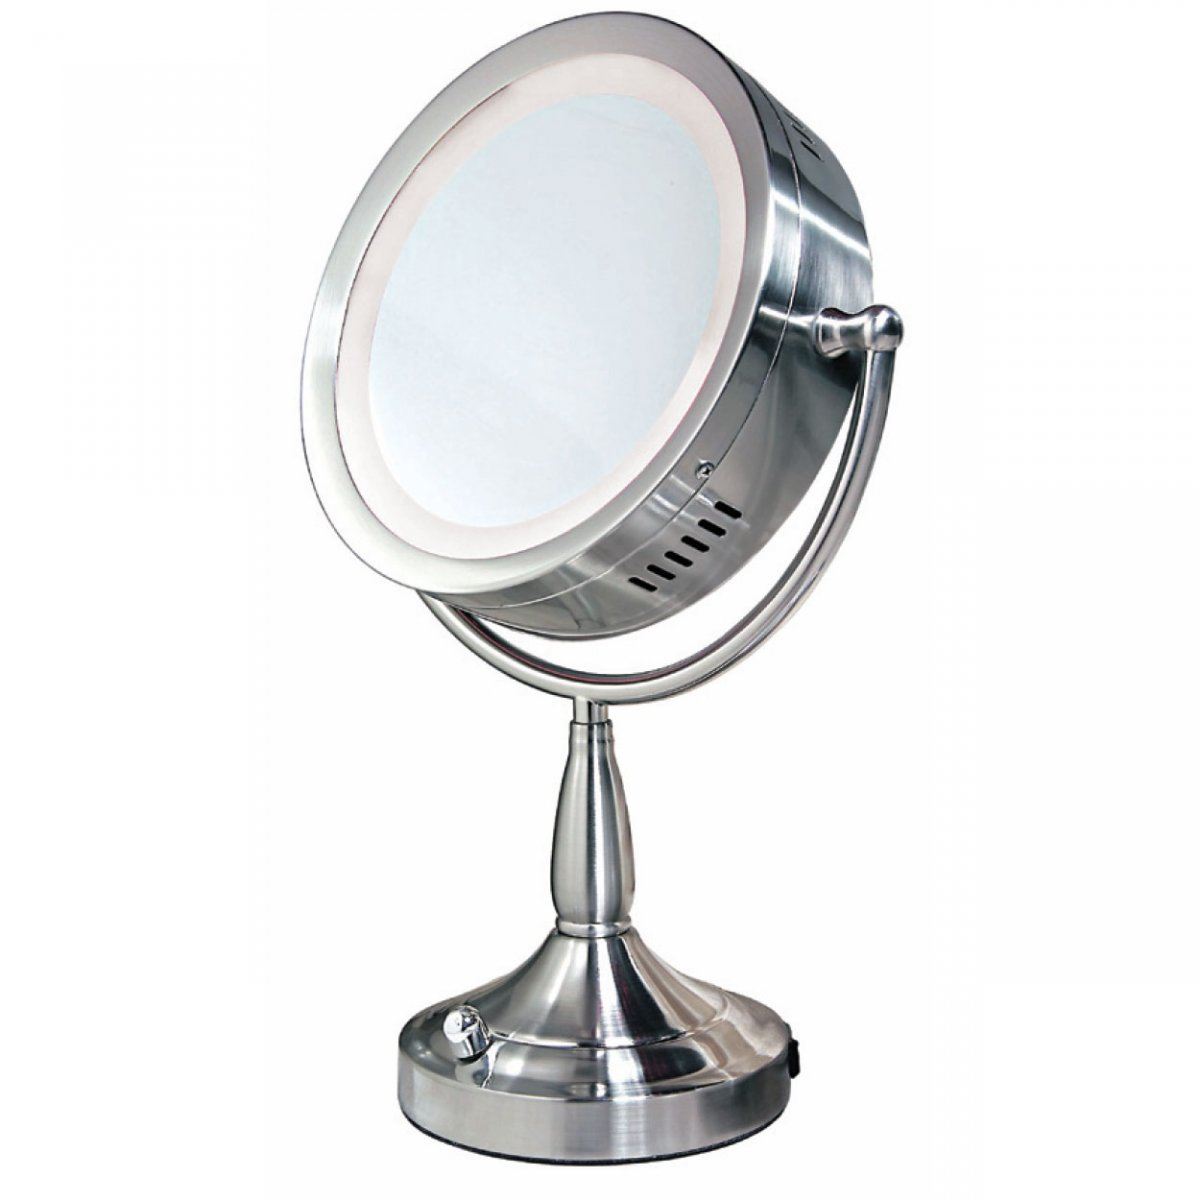 Lighted Makeup Vanity Table | Best Lighted Makeup Mirror | Wall Mounted Makeup Mirror